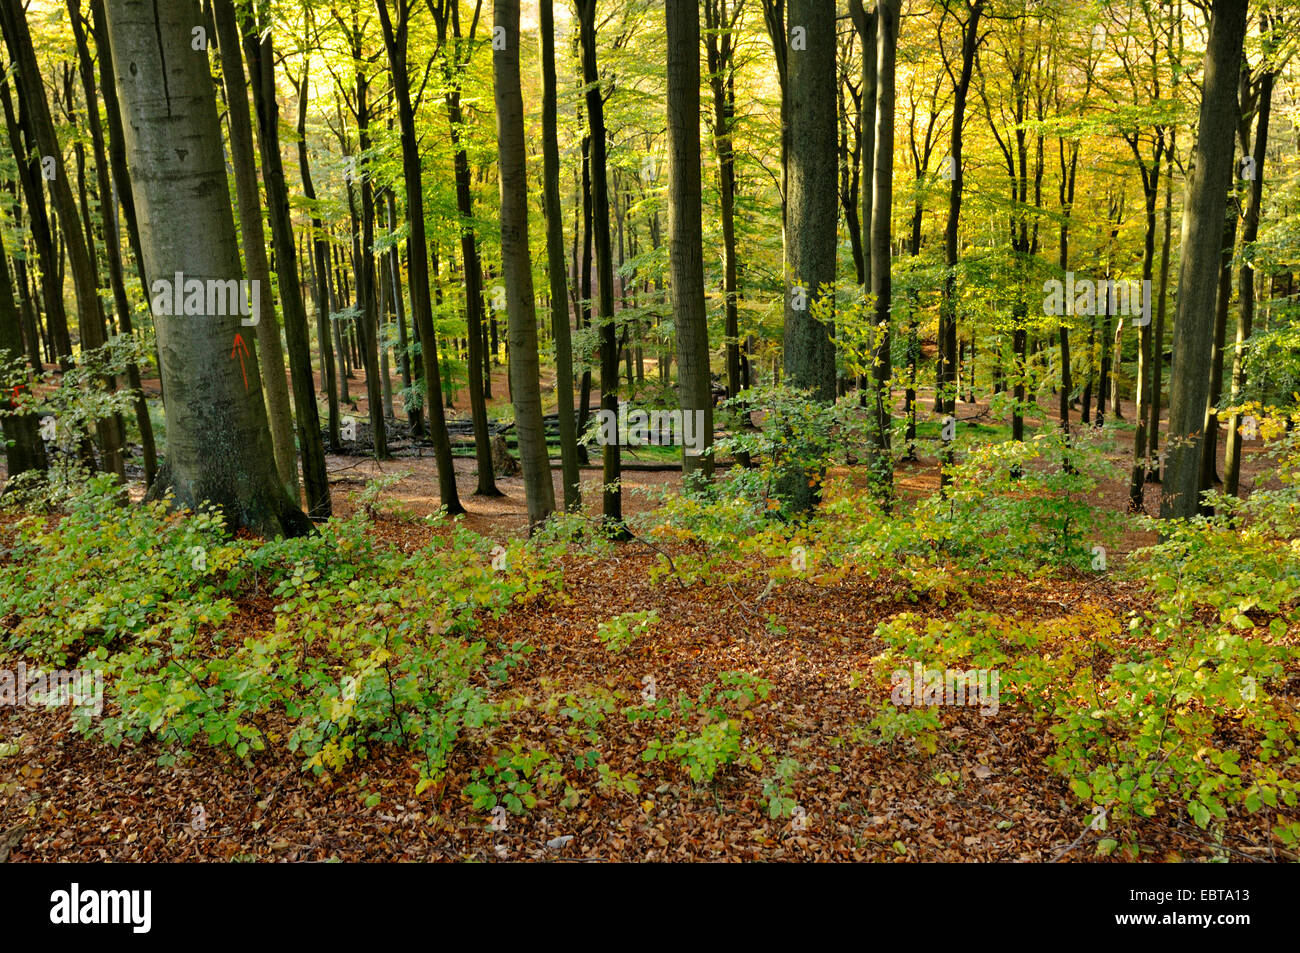 beech forest in autumn, Germany, North Rhine-Westphalia, Sauerland Stock Photo